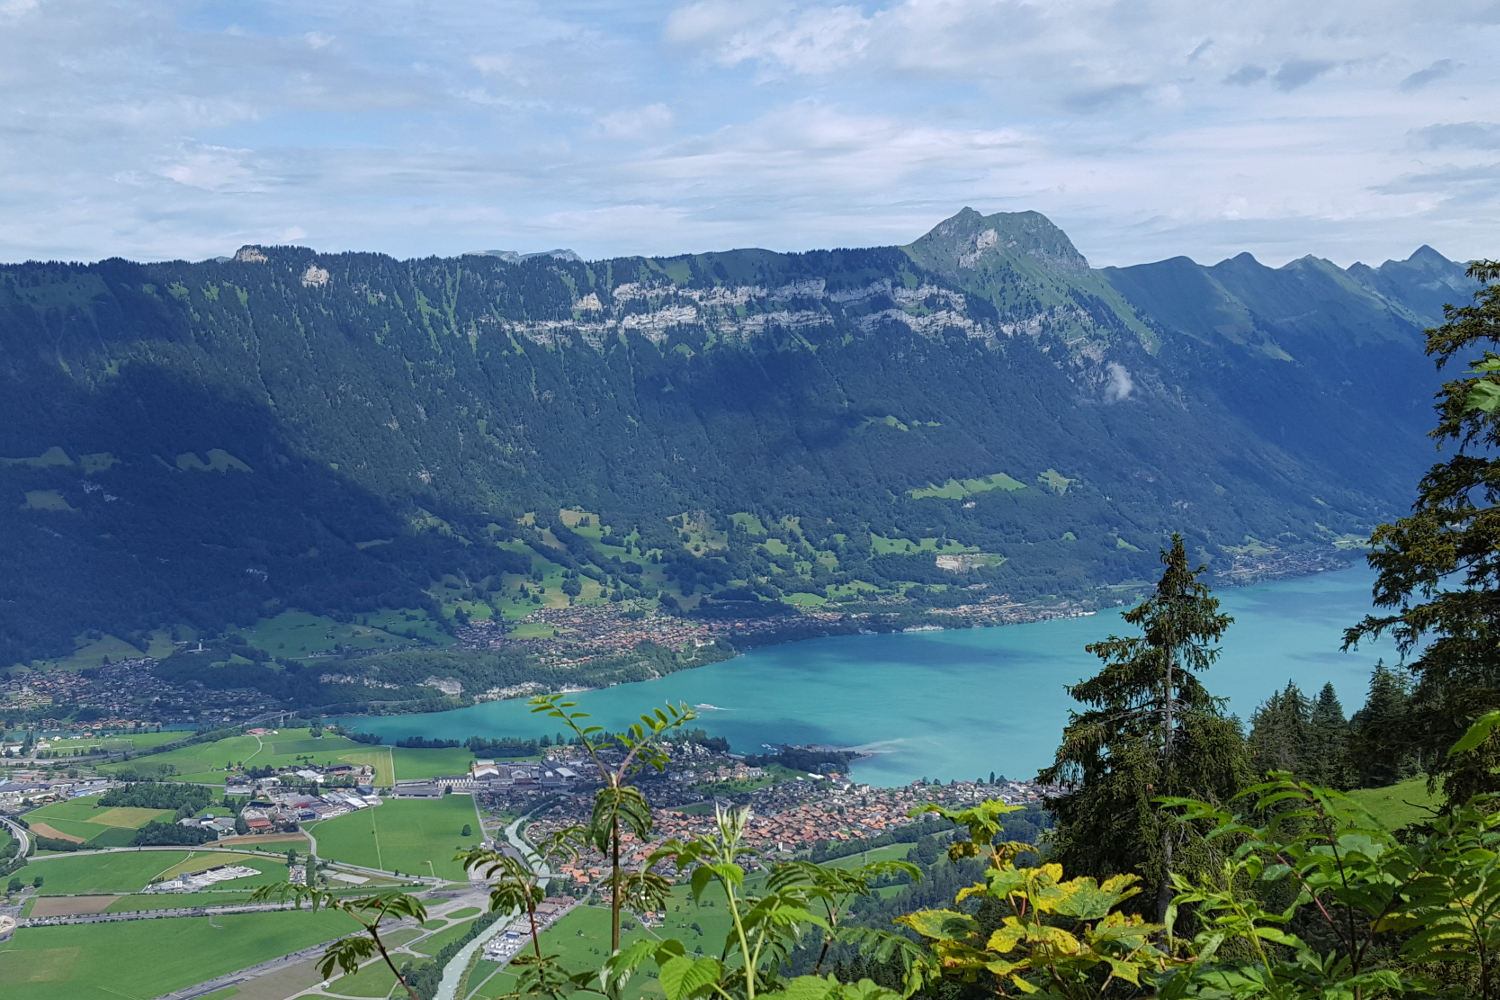 View from Breitlauenen on the climb to Schynige Platte overlooking Interlaken, Switzerland